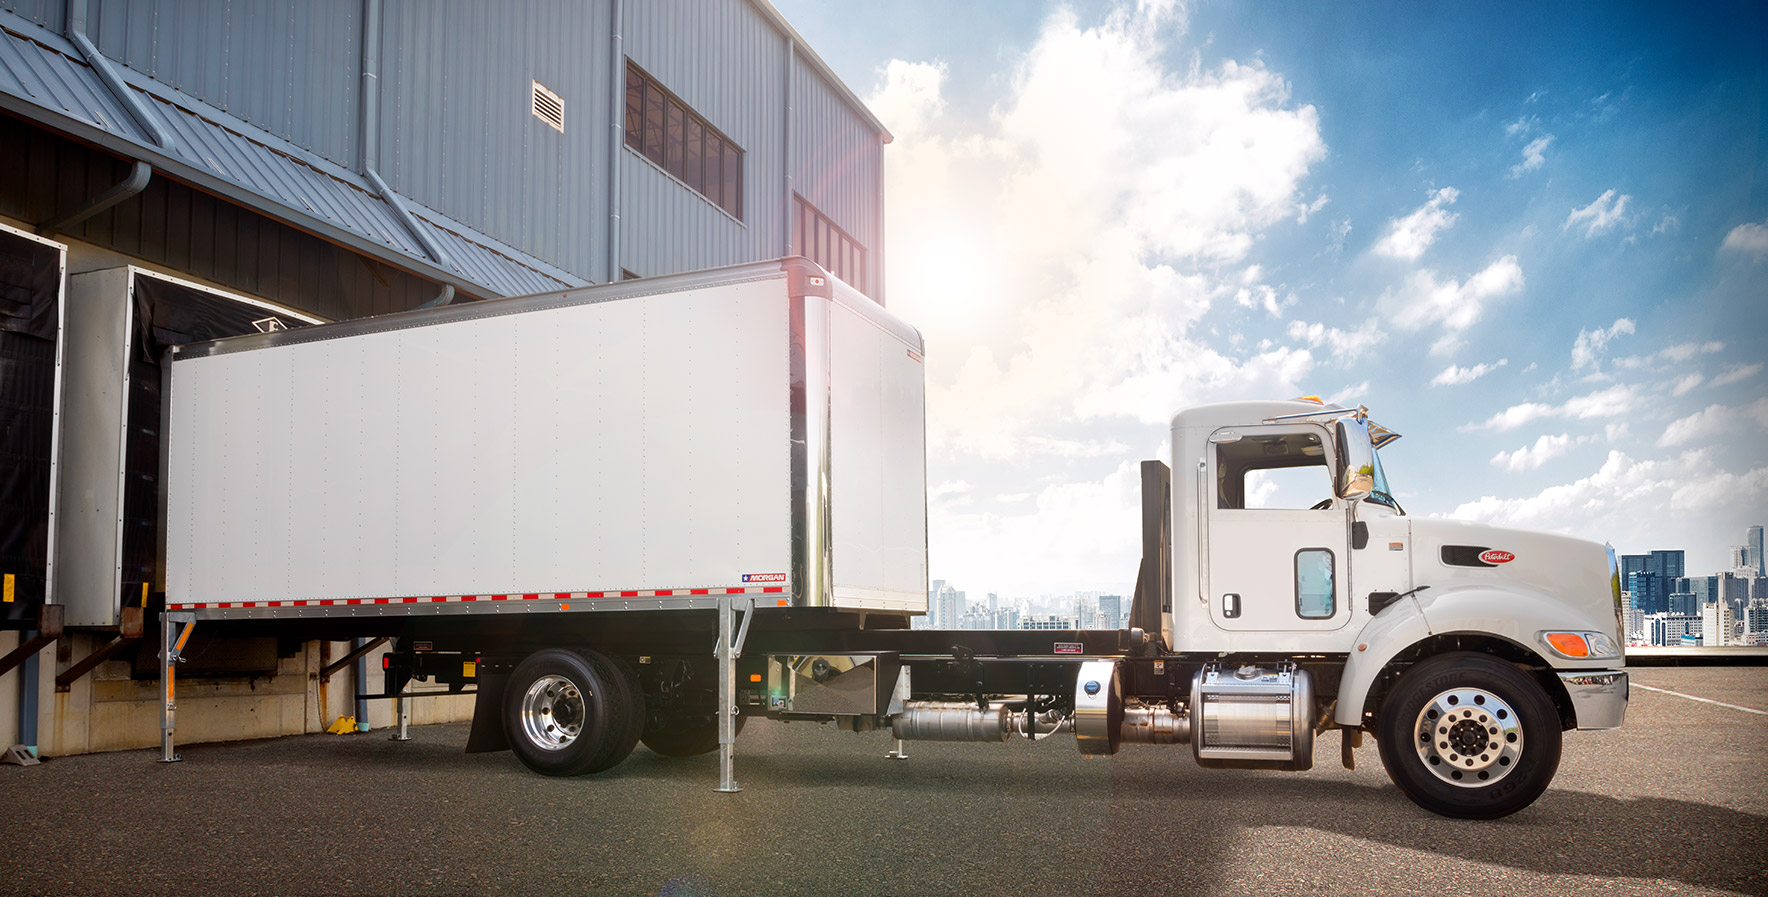 Demountable Concepts truck body detaching from chassis at loading dock